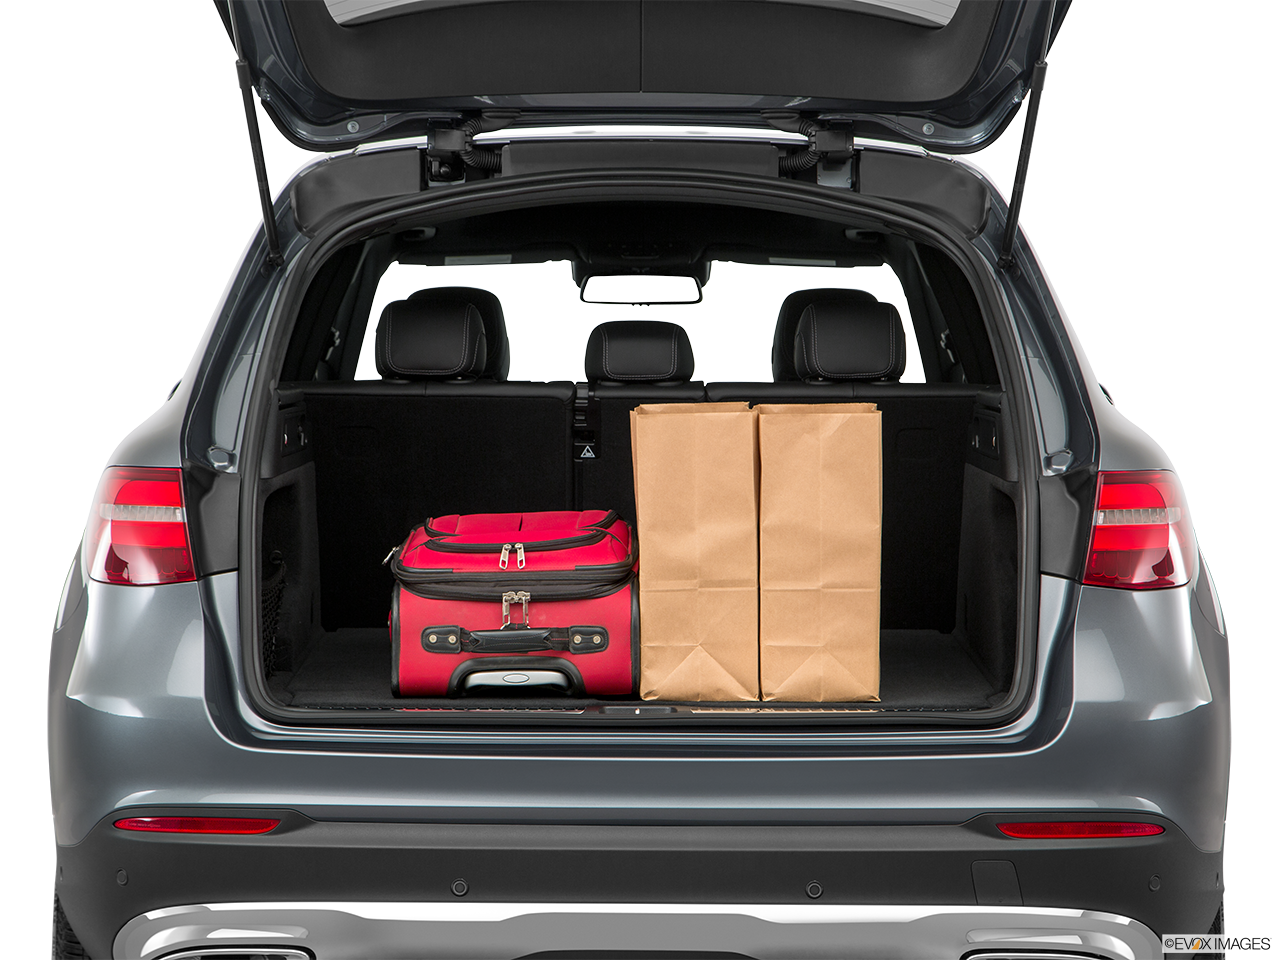 Trunk view of the Mercedes-Benz GLC350e